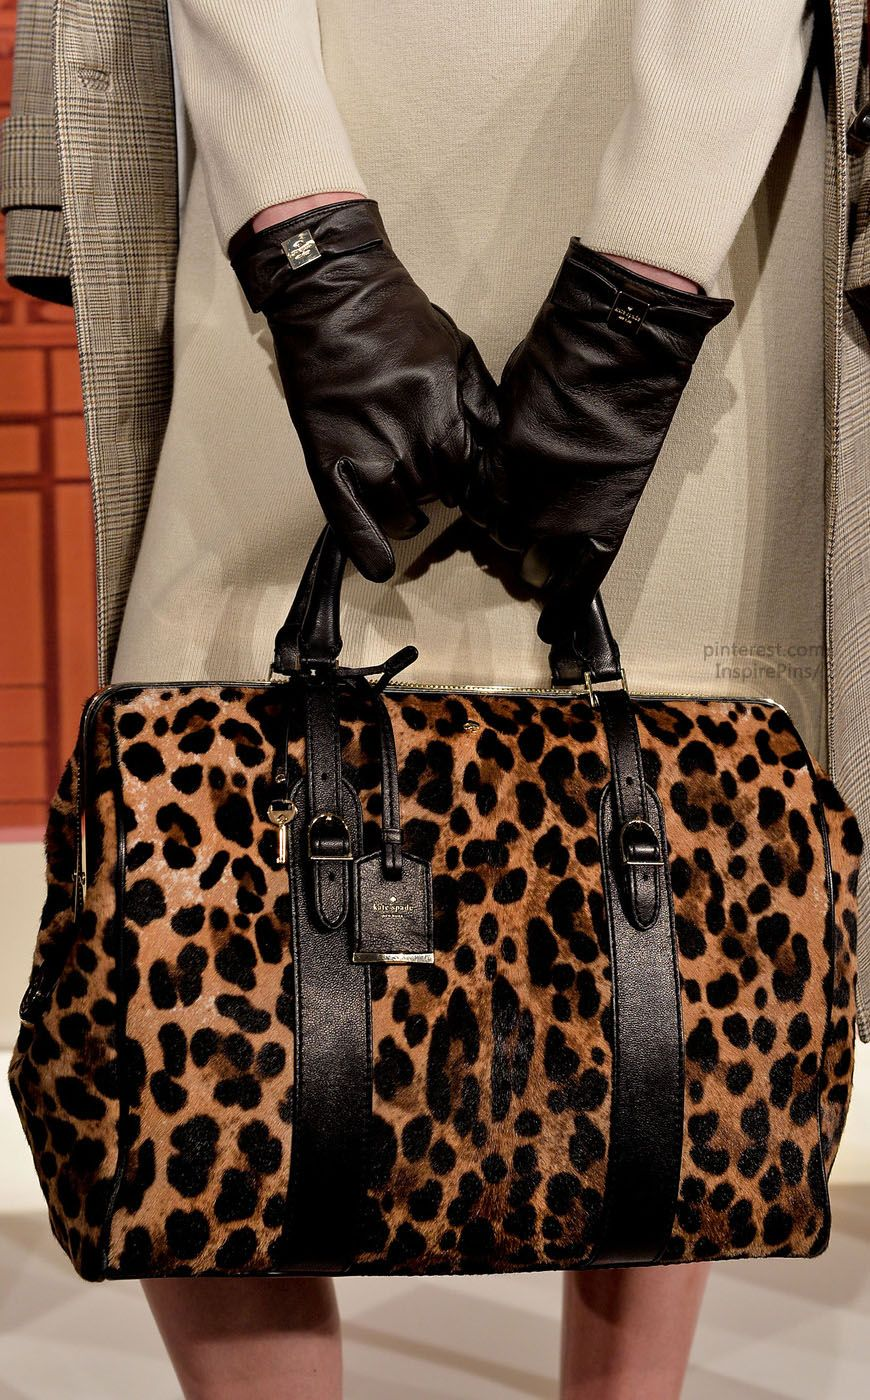 From Nyfw This Kate Spade Leopard Print Handbag Is A Must Have For Your Trov Fall